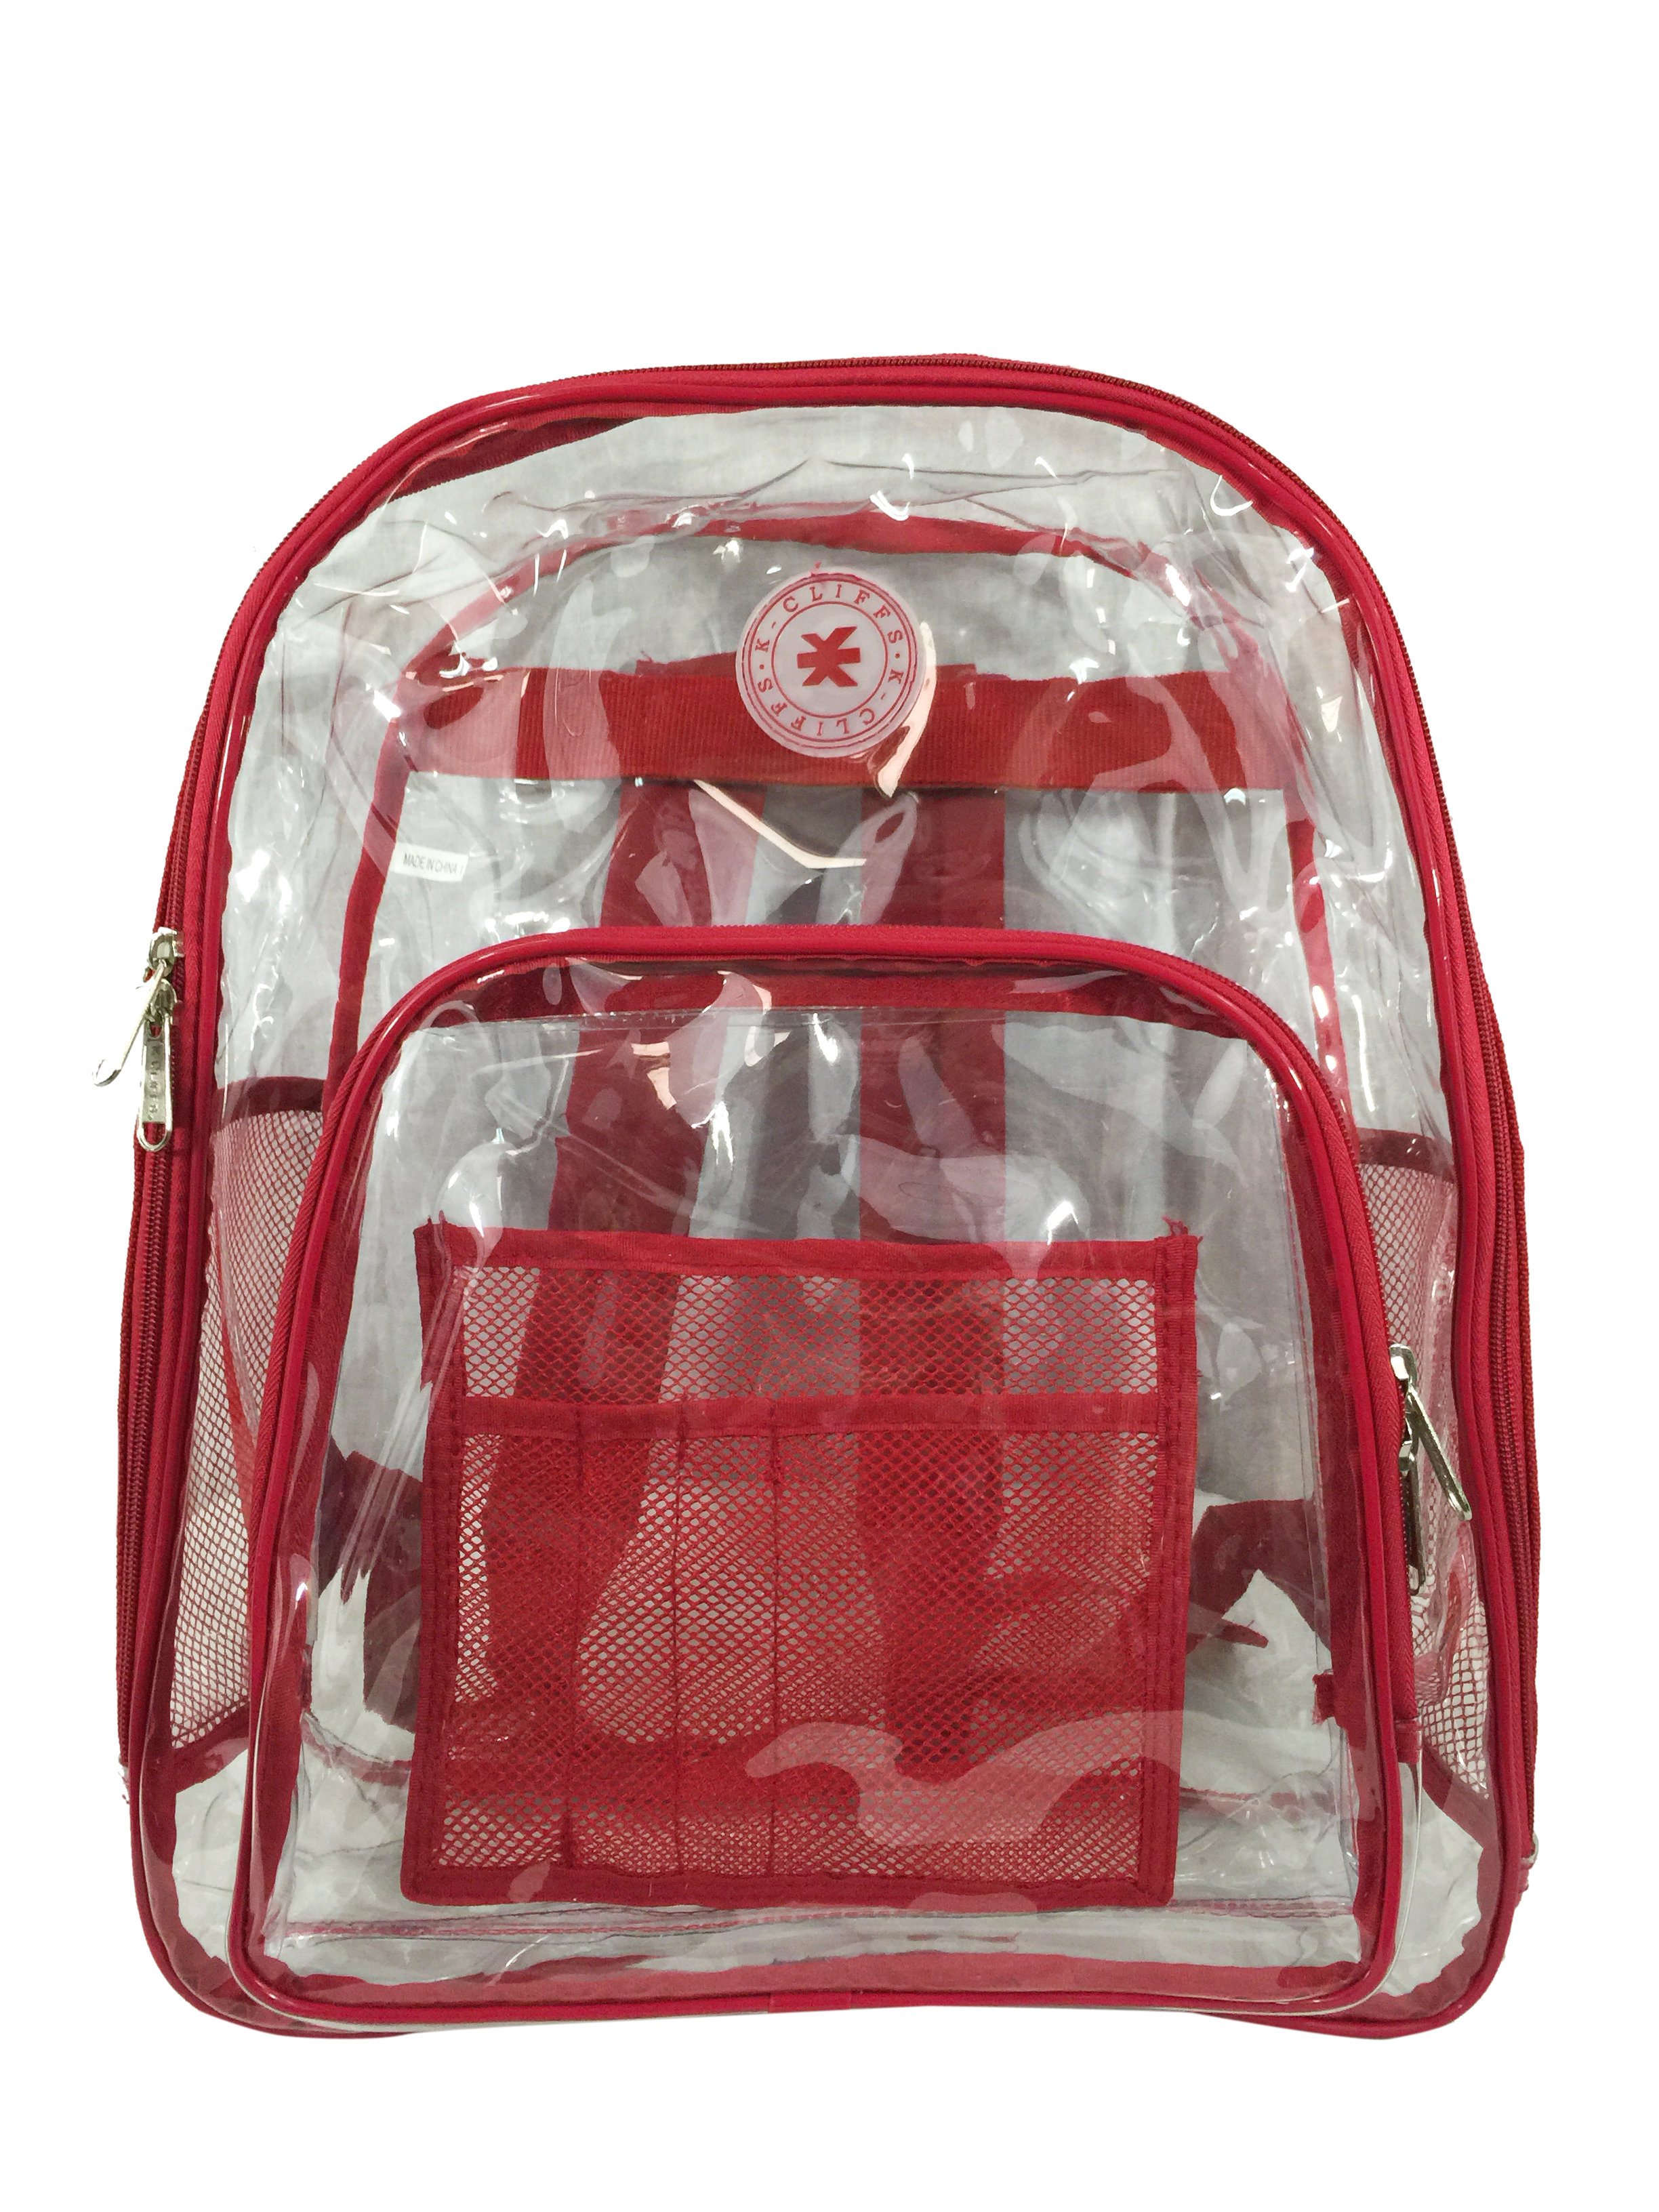 K-Cliffs Heavy Duty Clear Backpack See Through Daypack Student Transparent Bookbag Red by K-Cliffs